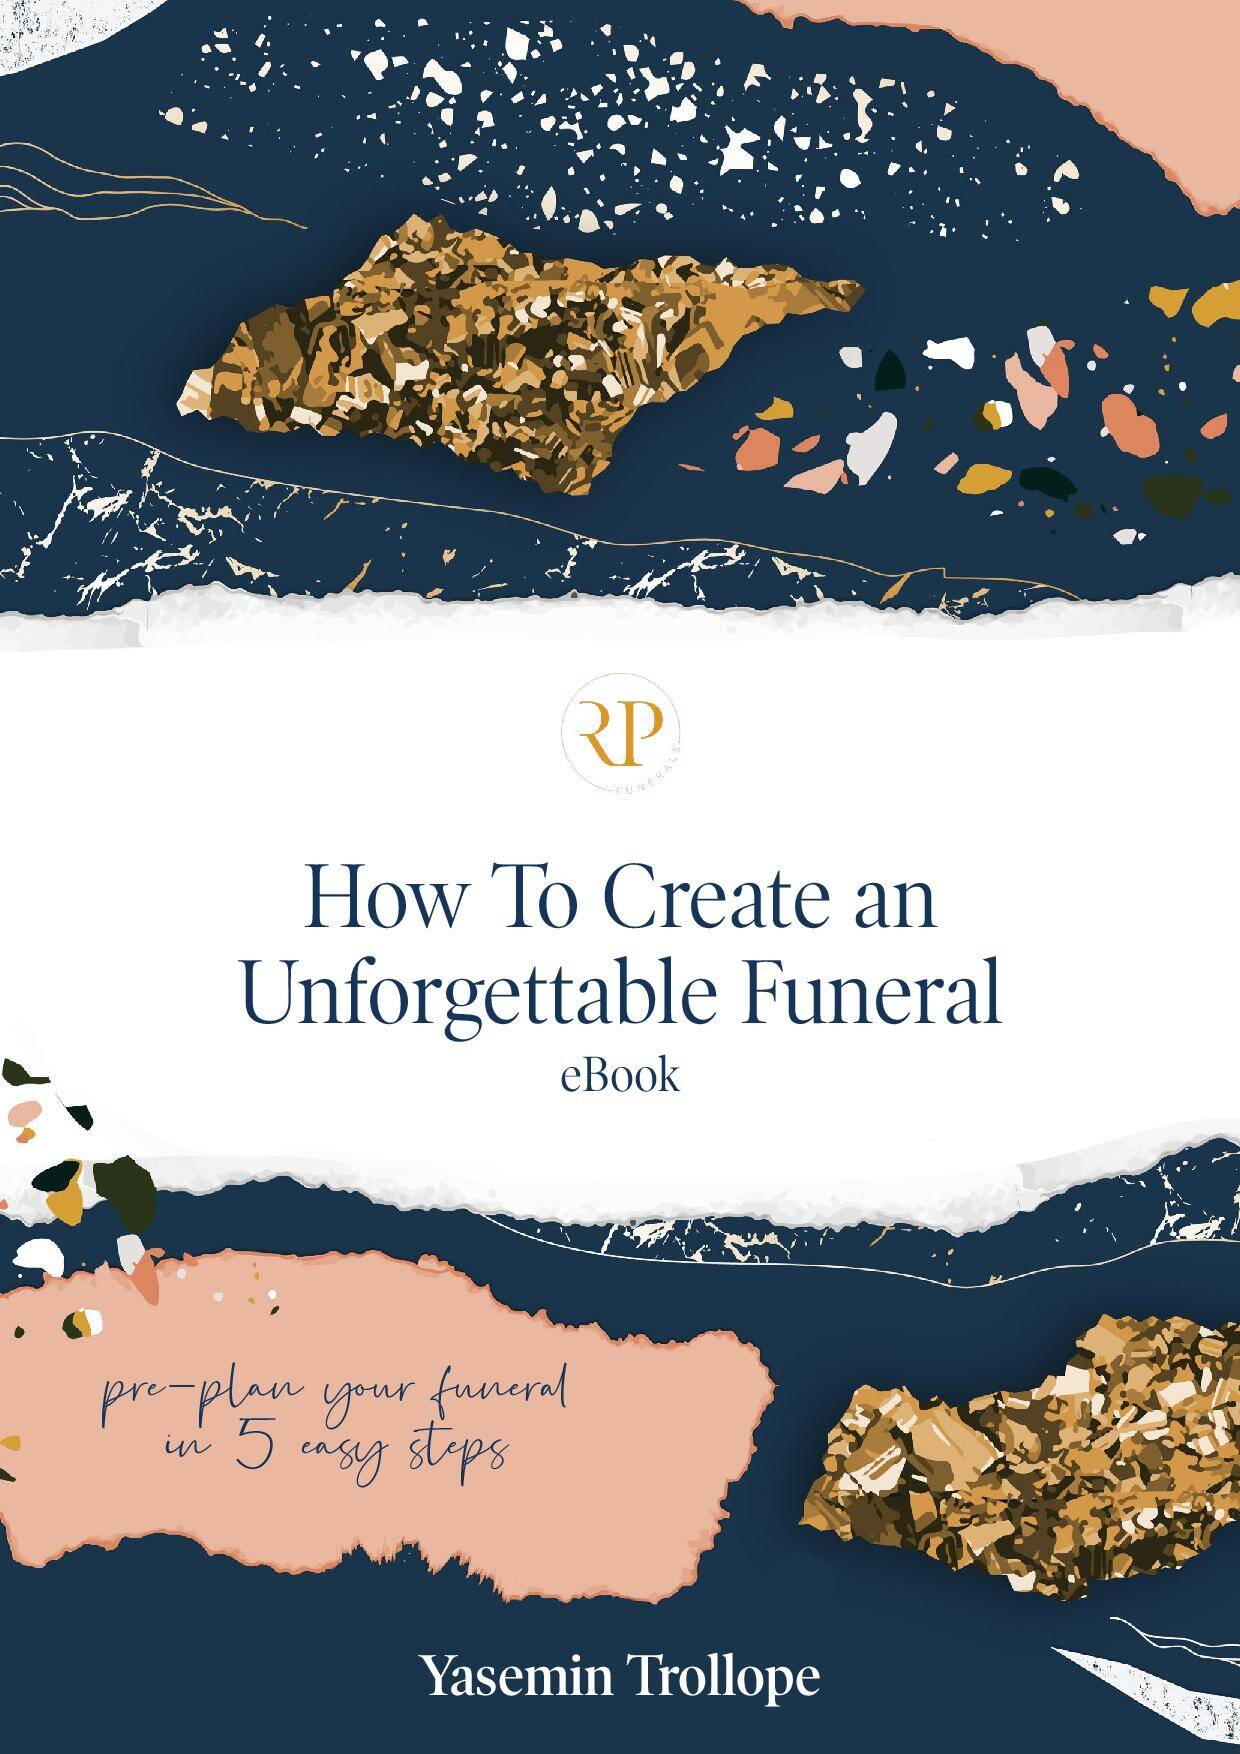 Funeral Planning Course